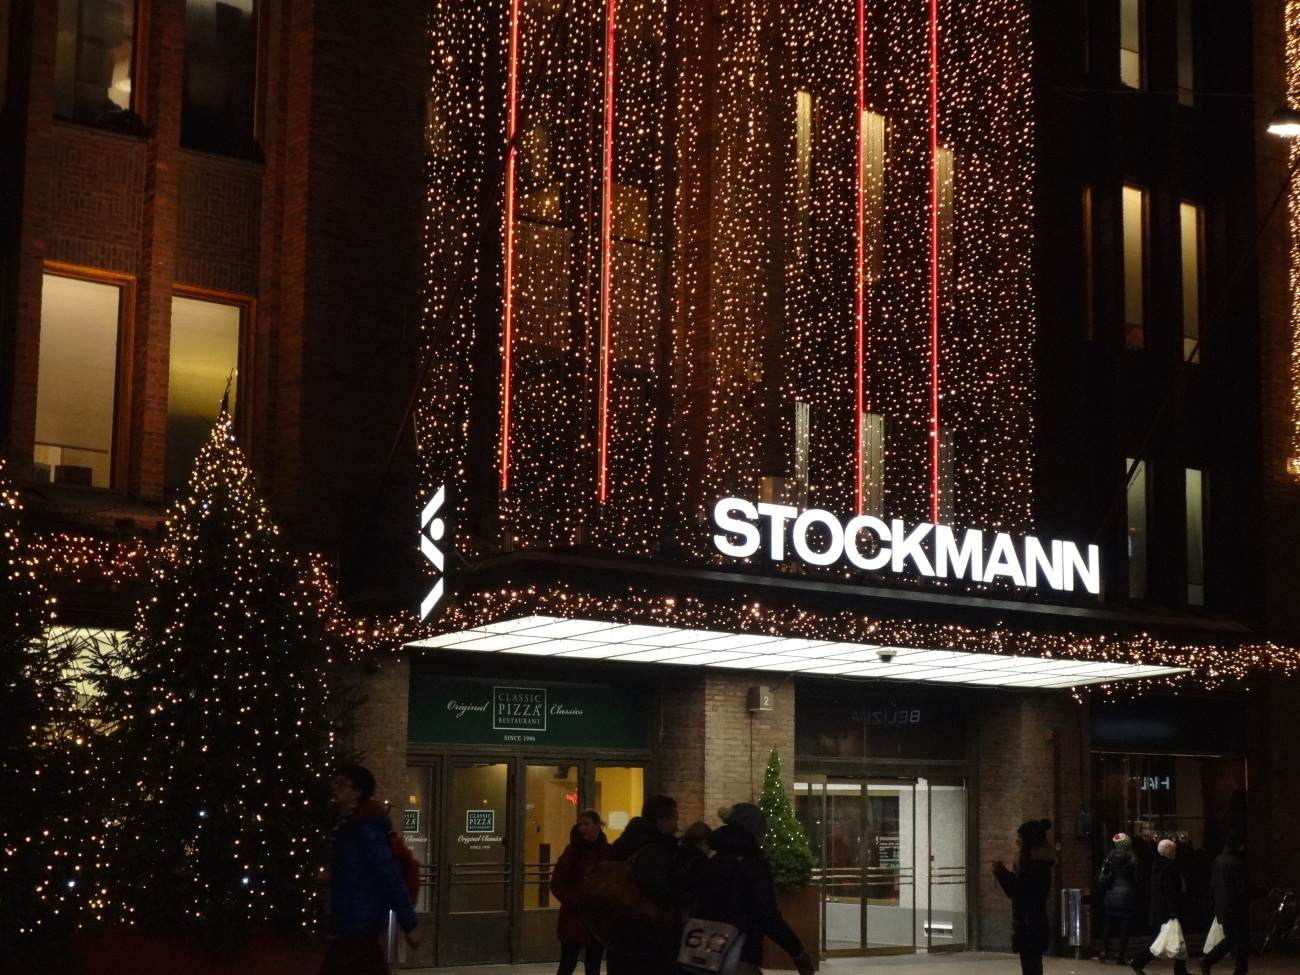 Stockmann Shopping Complex